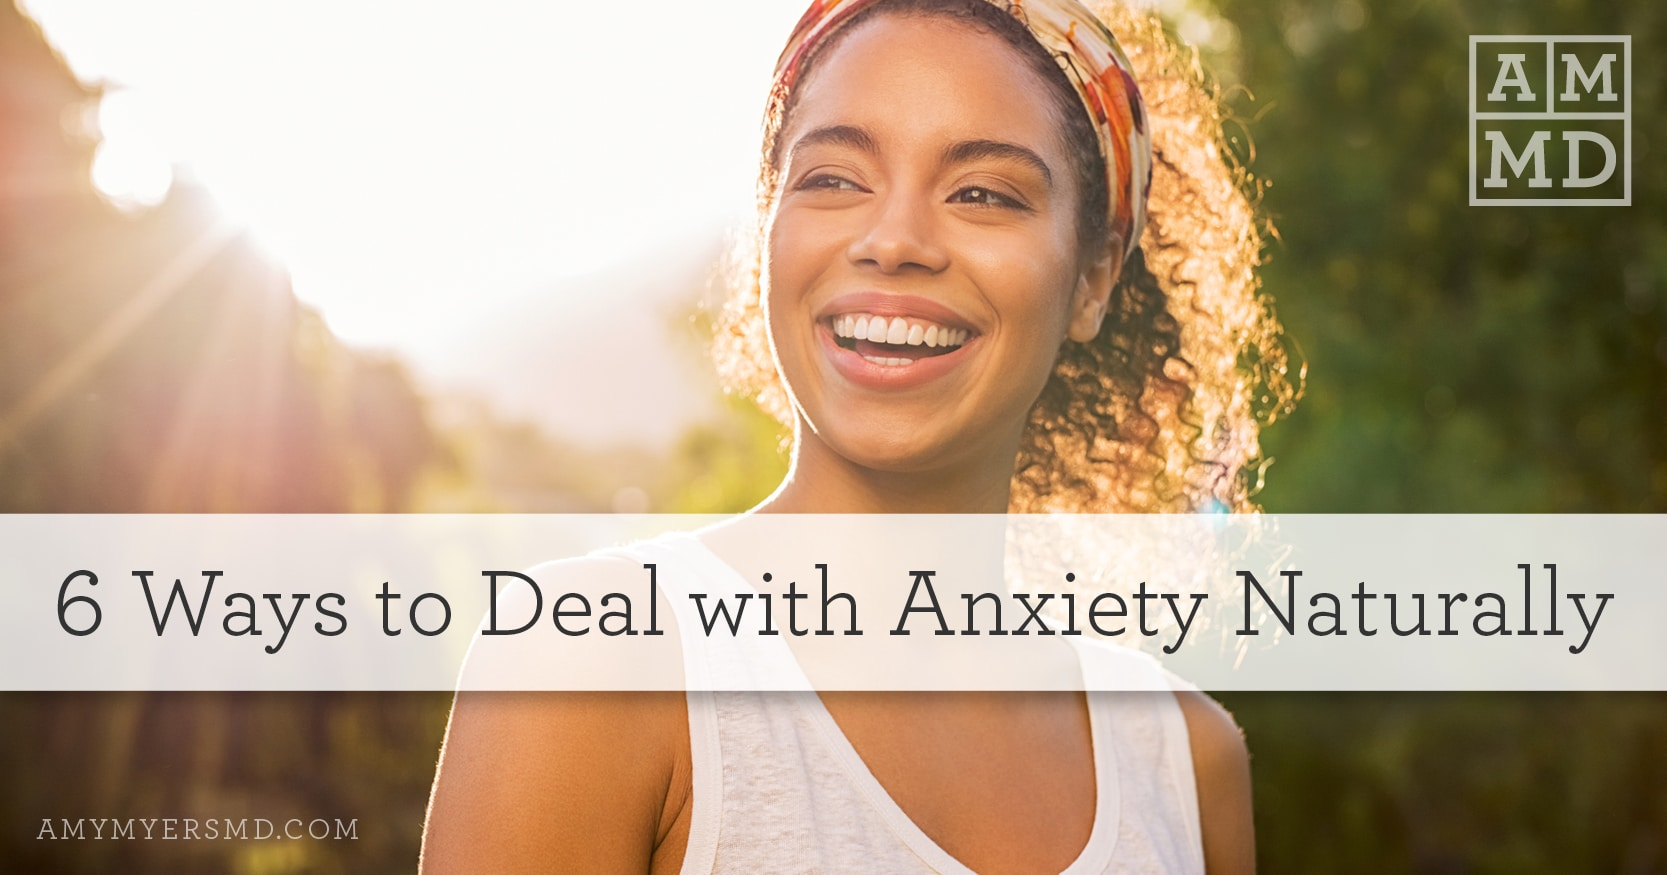 6 Ways to Deal with Anxiety Naturally - A Woman Smiling - Featured Image - Amy Myers MD